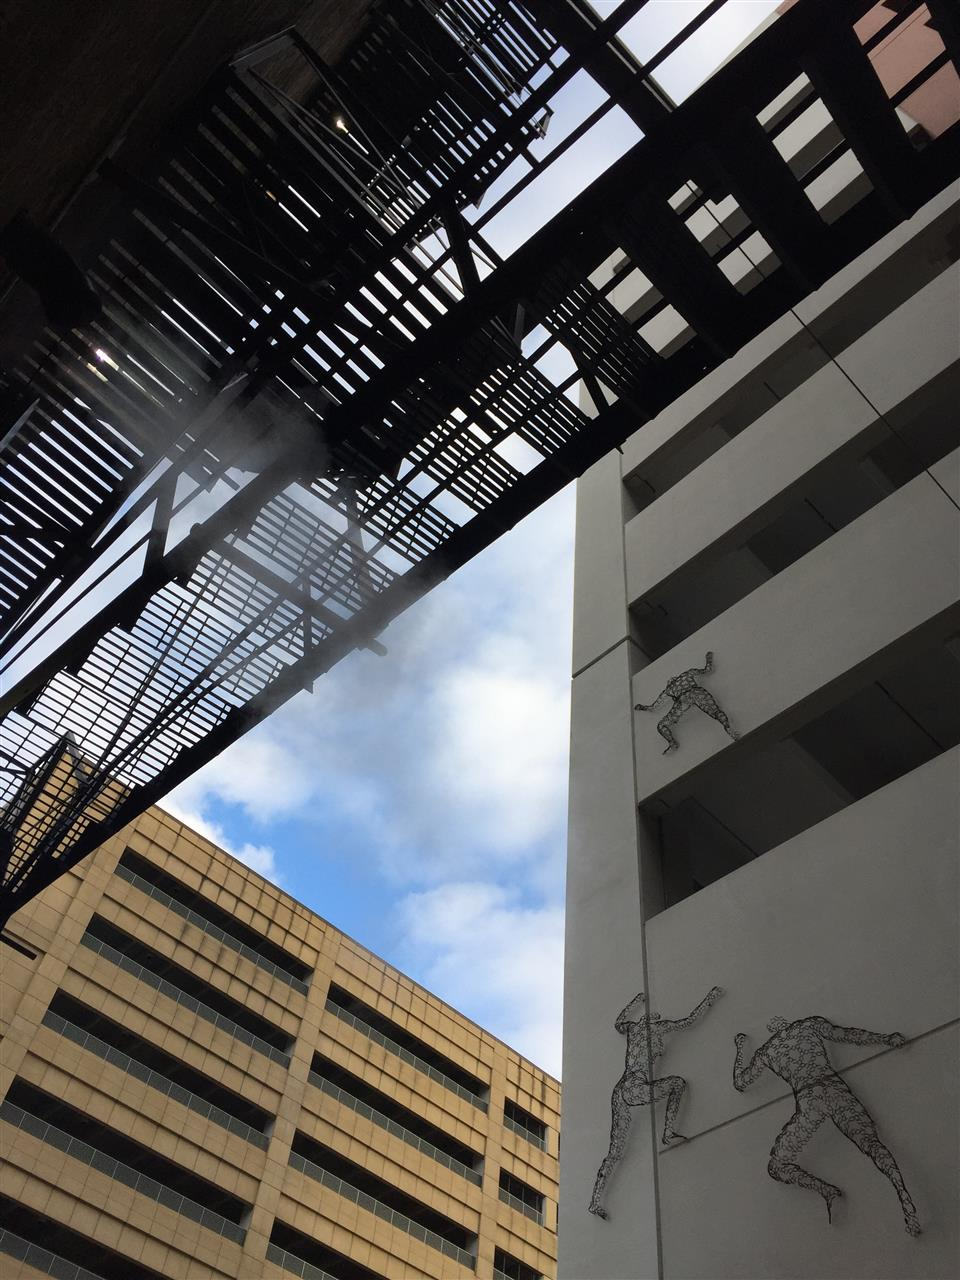 Art in ôThe Beltö, a newly redeveloped alley filled with public art connecting Grand River and Gratiot Avenue between Broadway and Library Street in downtown Detroit.  #Detroit #Michigan